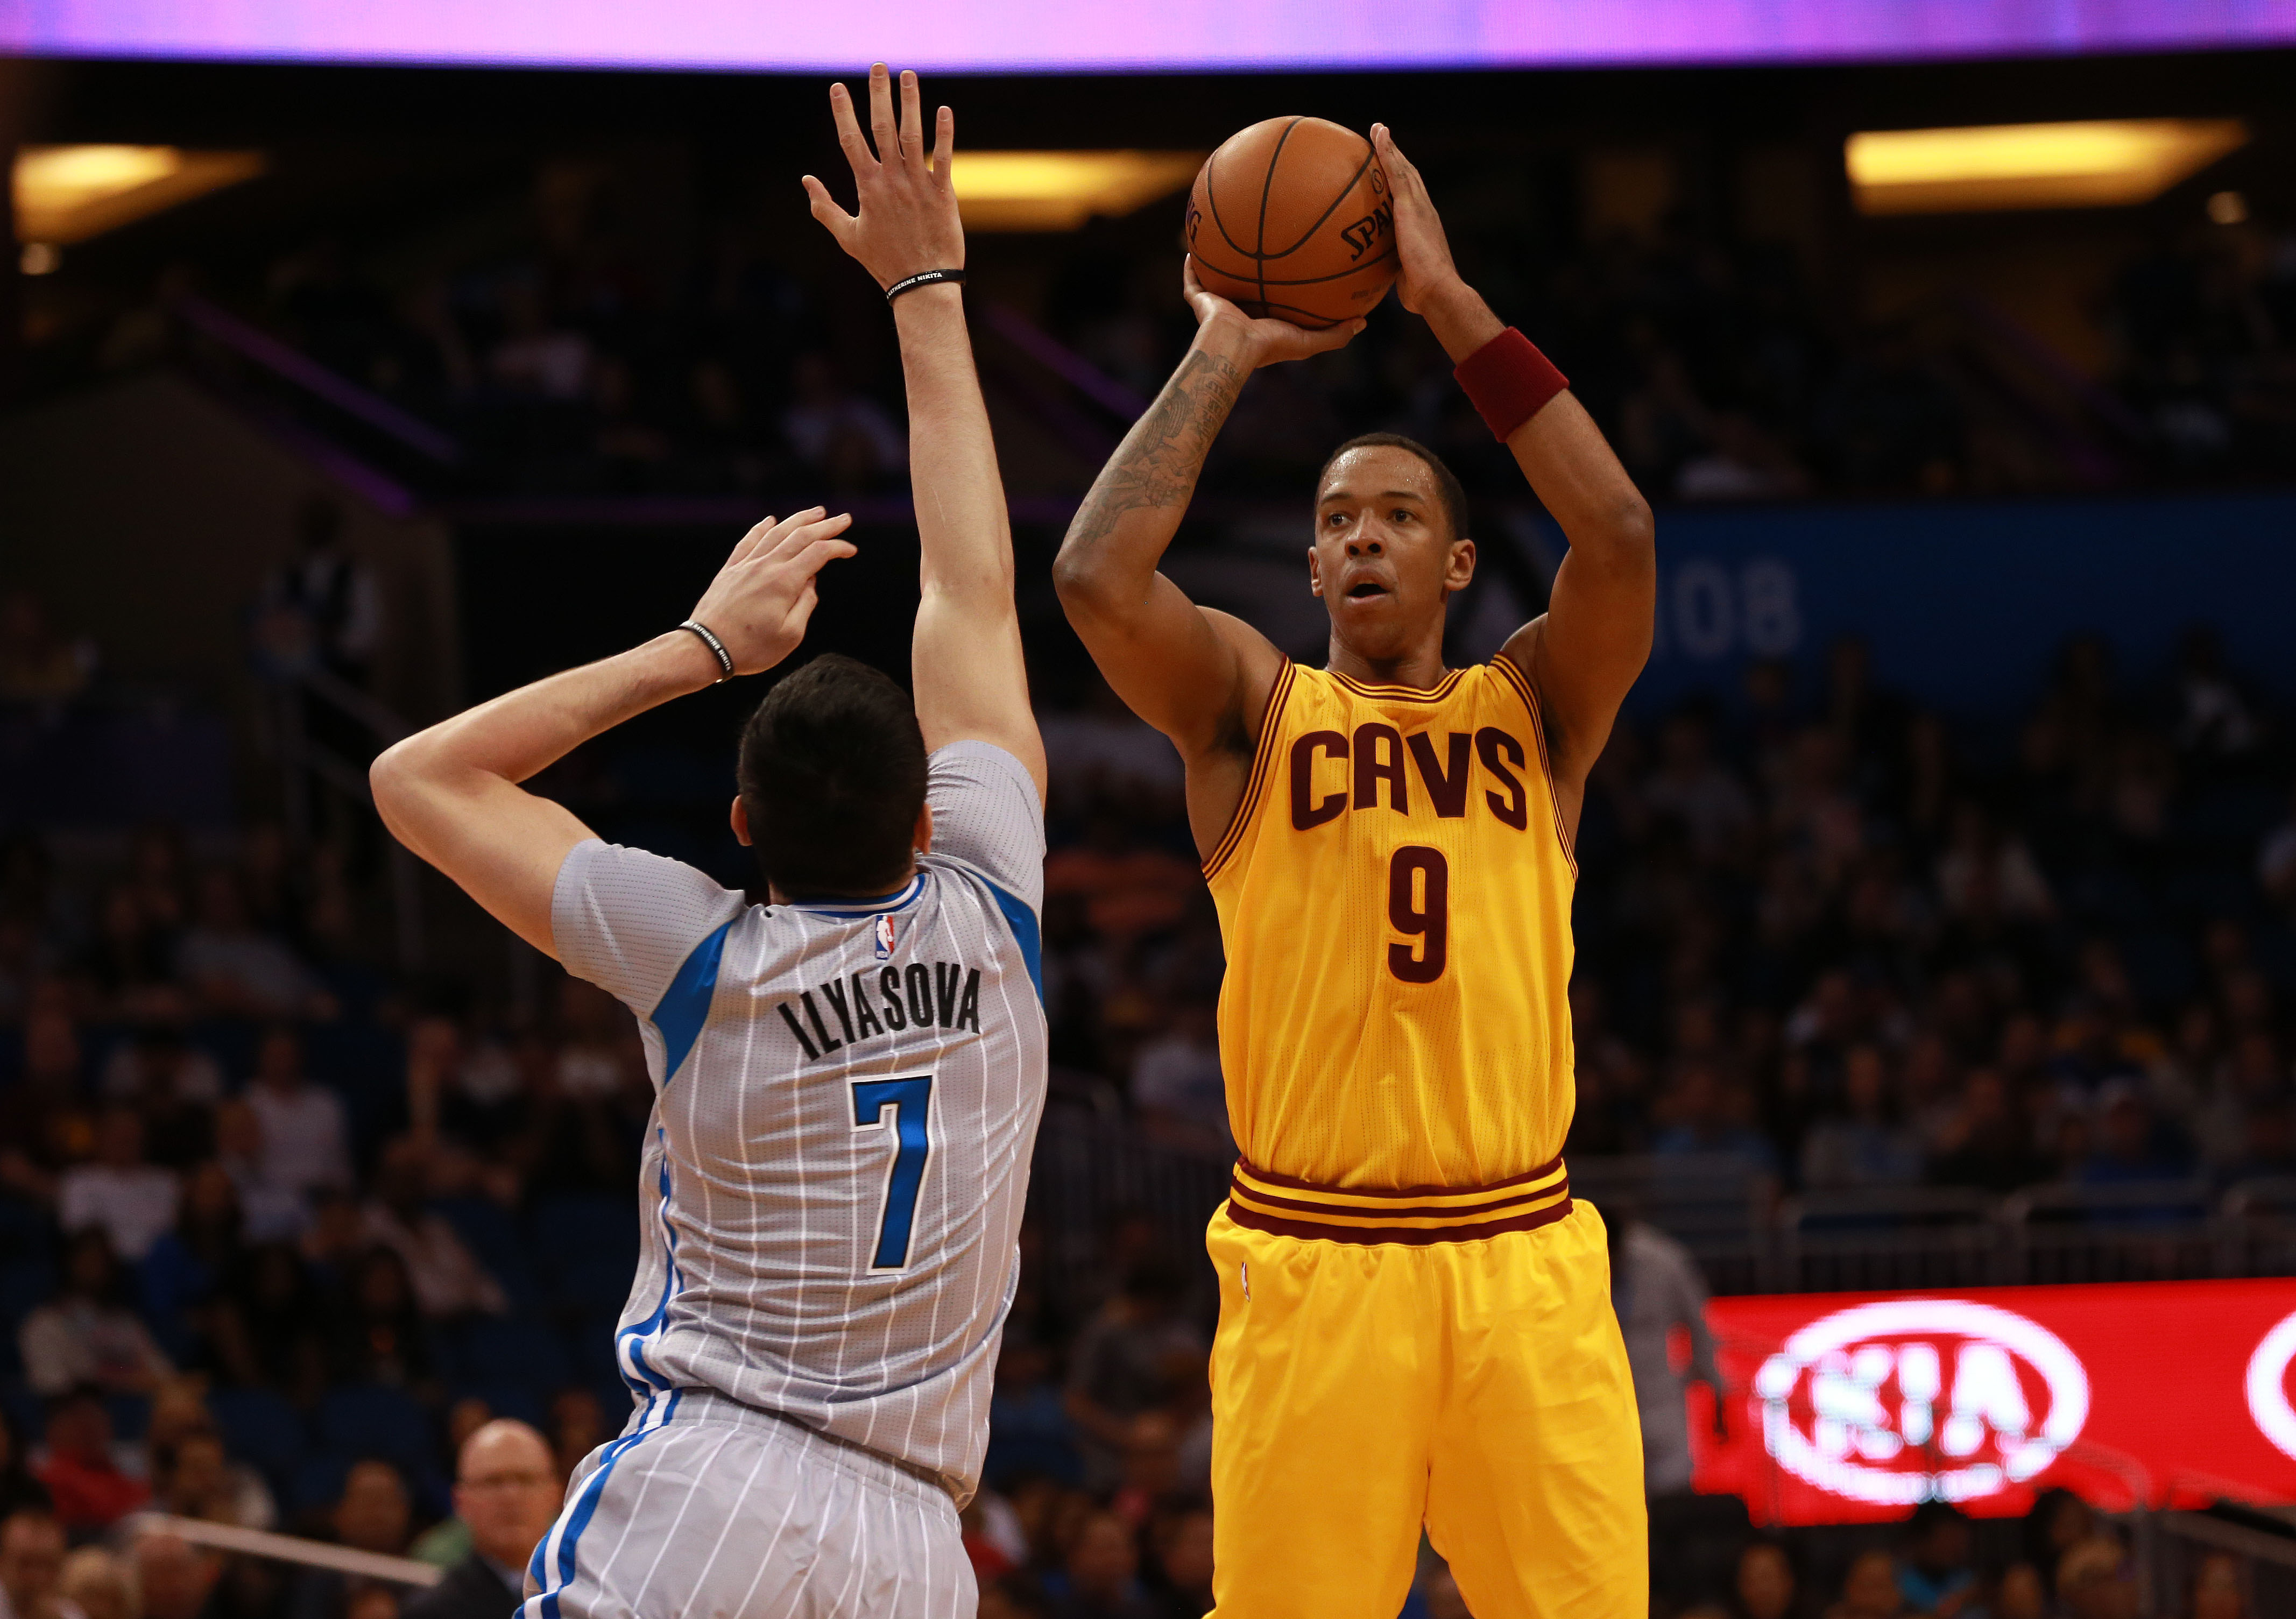 James, Love carry Cavs to 107-93 victory over Knicks